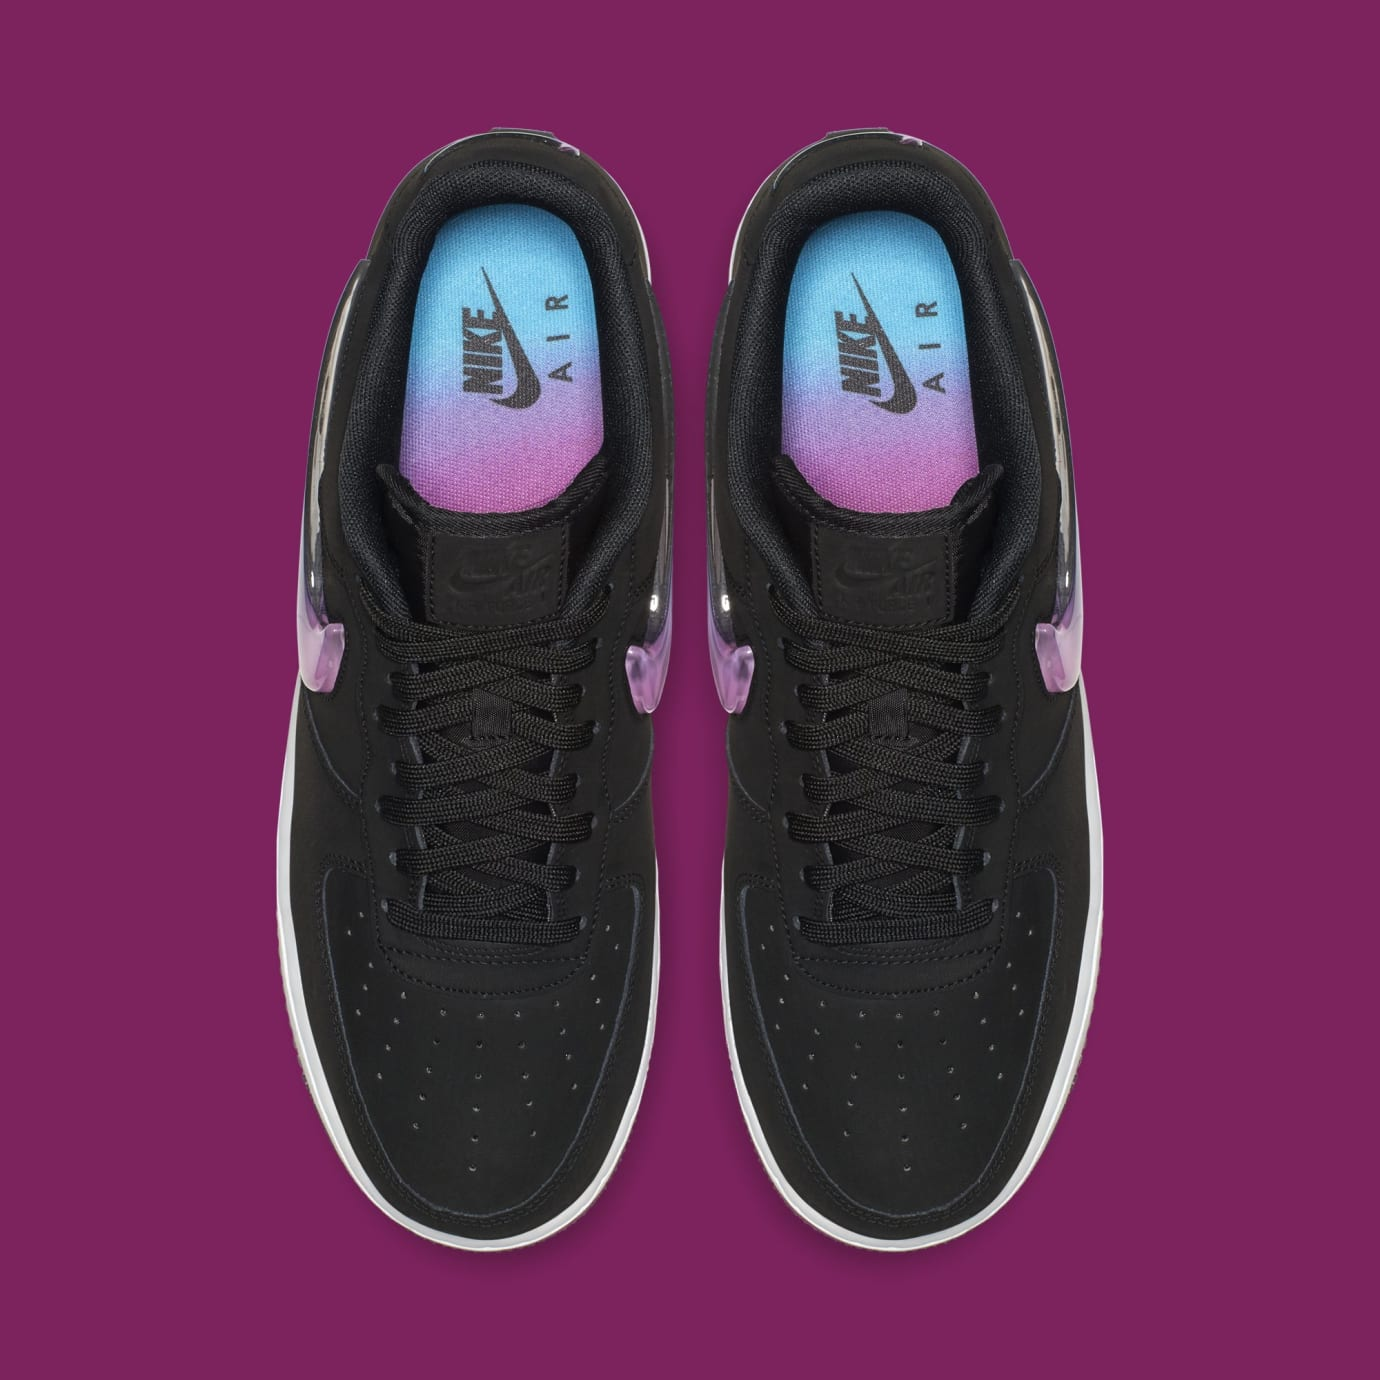 78b6df8cb09 Image via Nike Nike Air Force 1 Low Jewel  Black Active Fuchsia-Blue  Lagoon-White